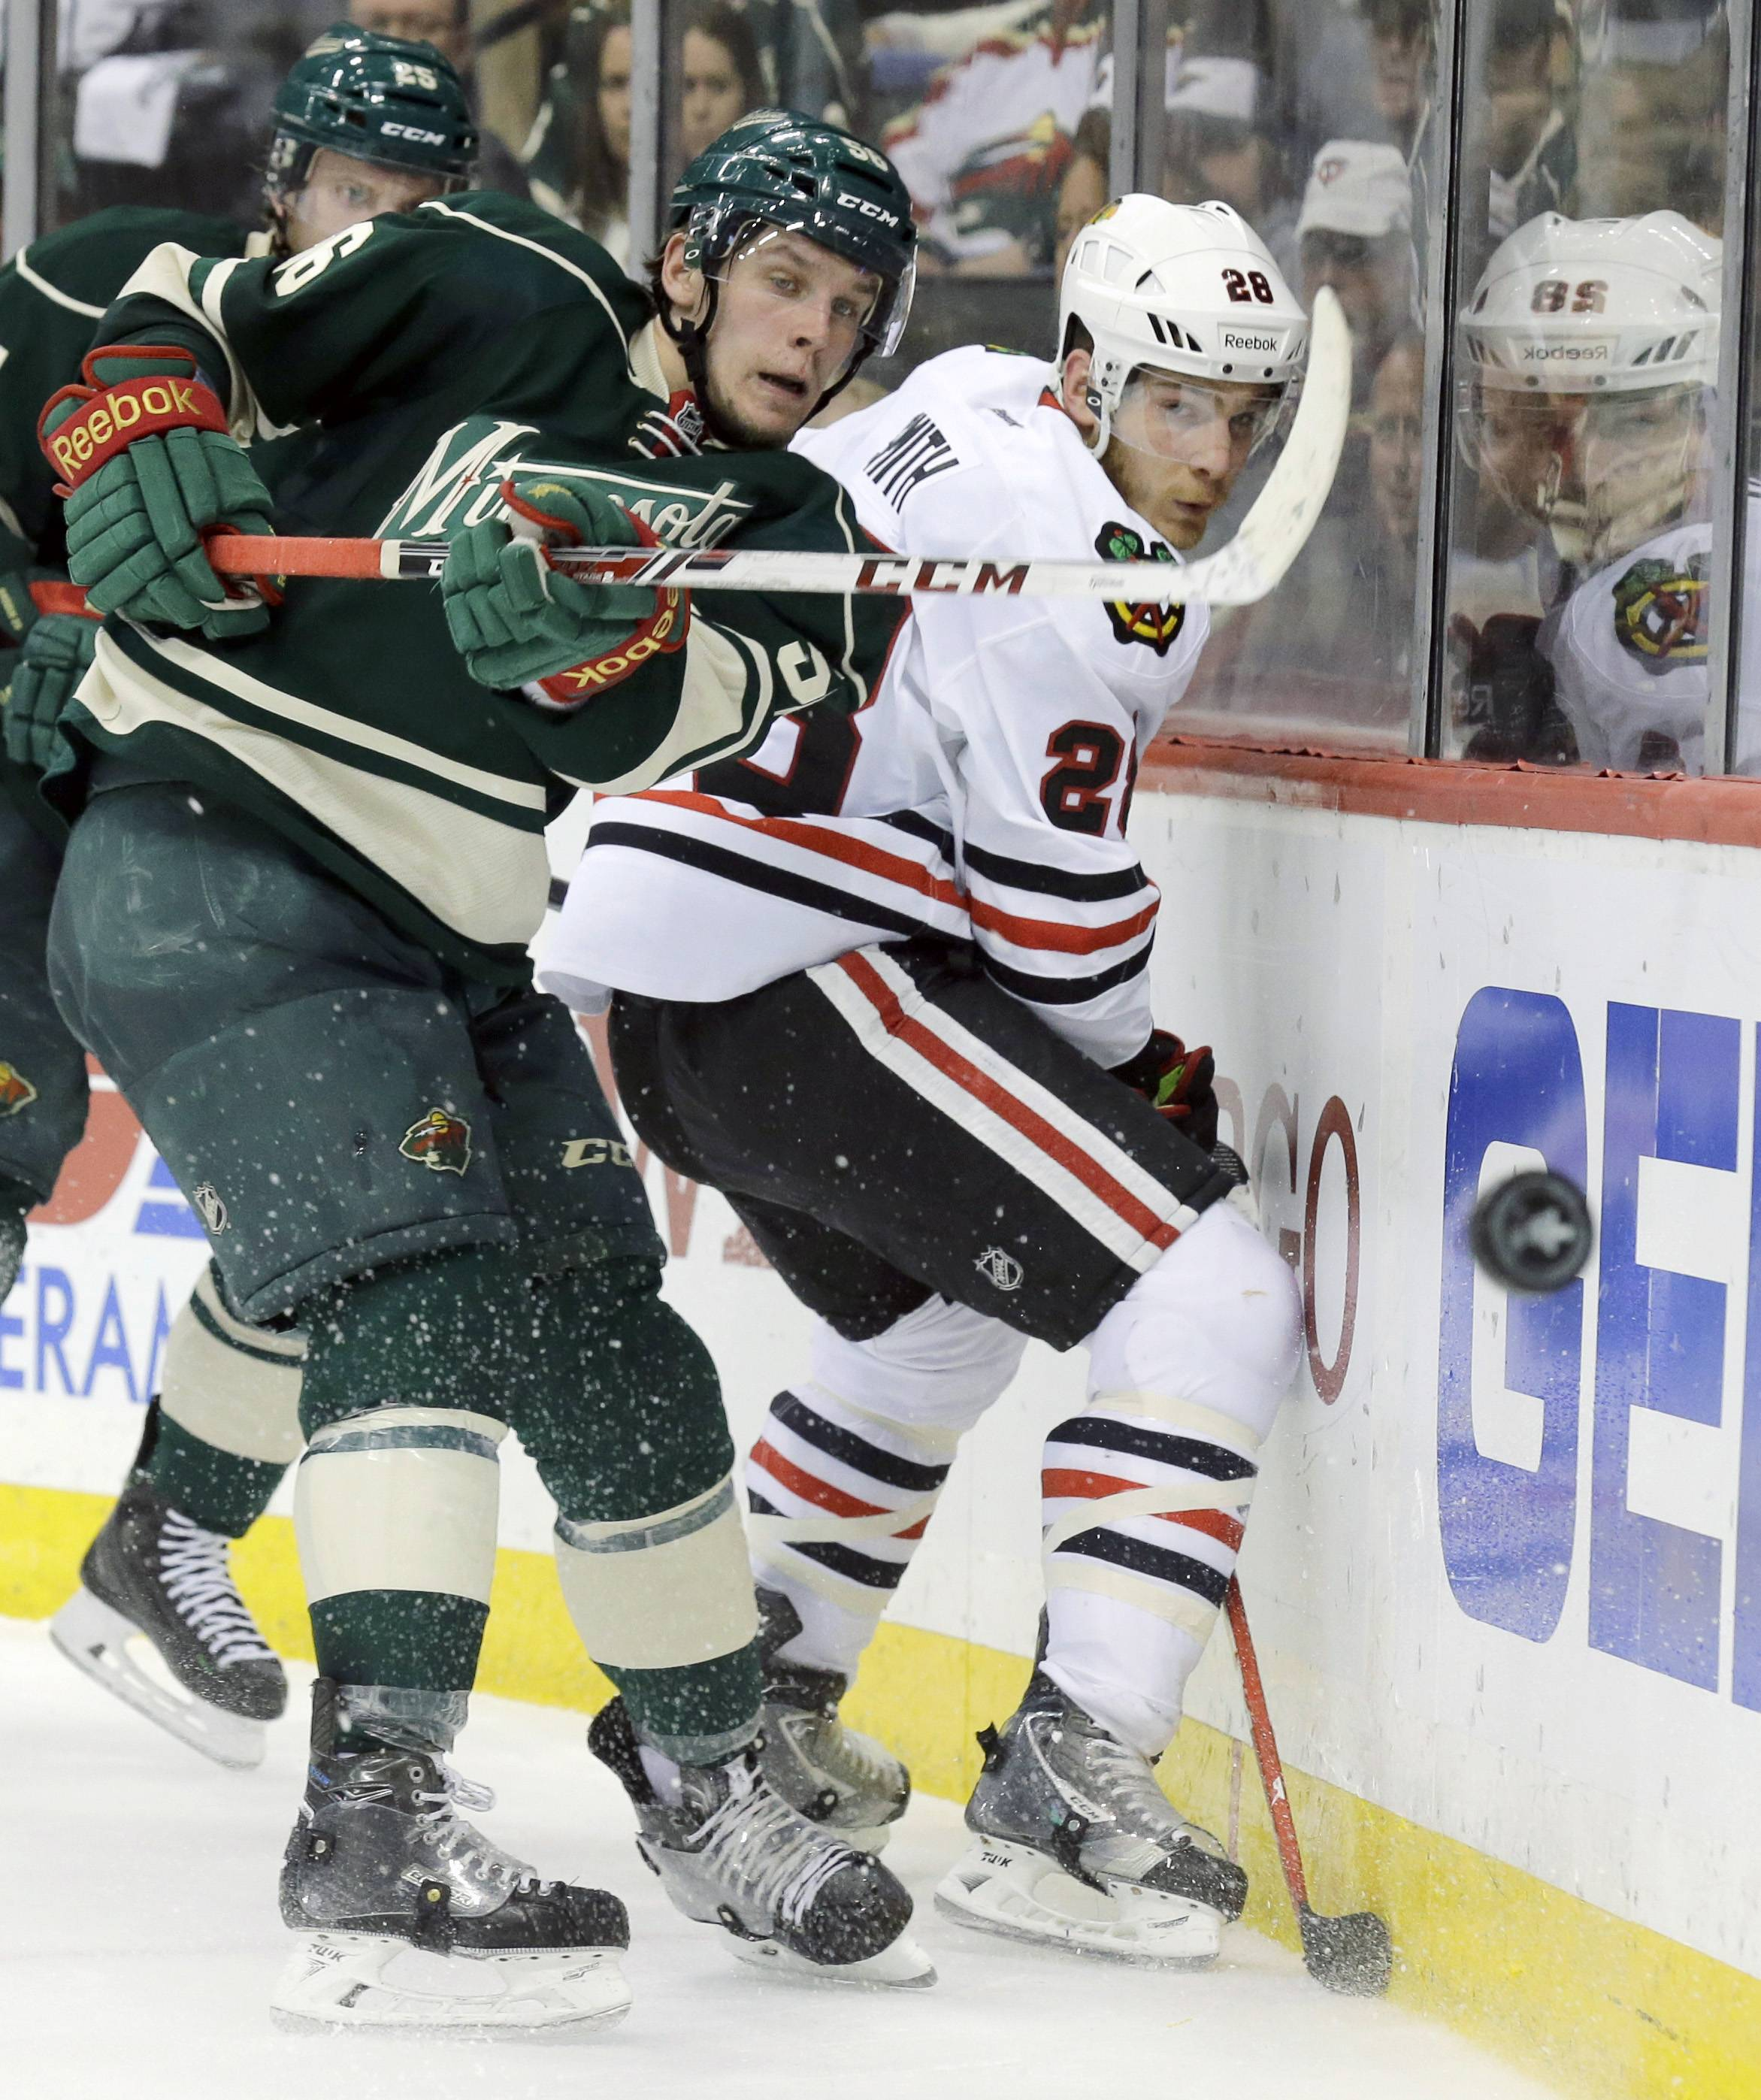 Minnesota Wild left wing Erik Haula, left, of Finland, and Blackhawks forward Ben Smith (28) chase the puck during the second period of Game 6. The Blackhawks won 2-1 in overtime.